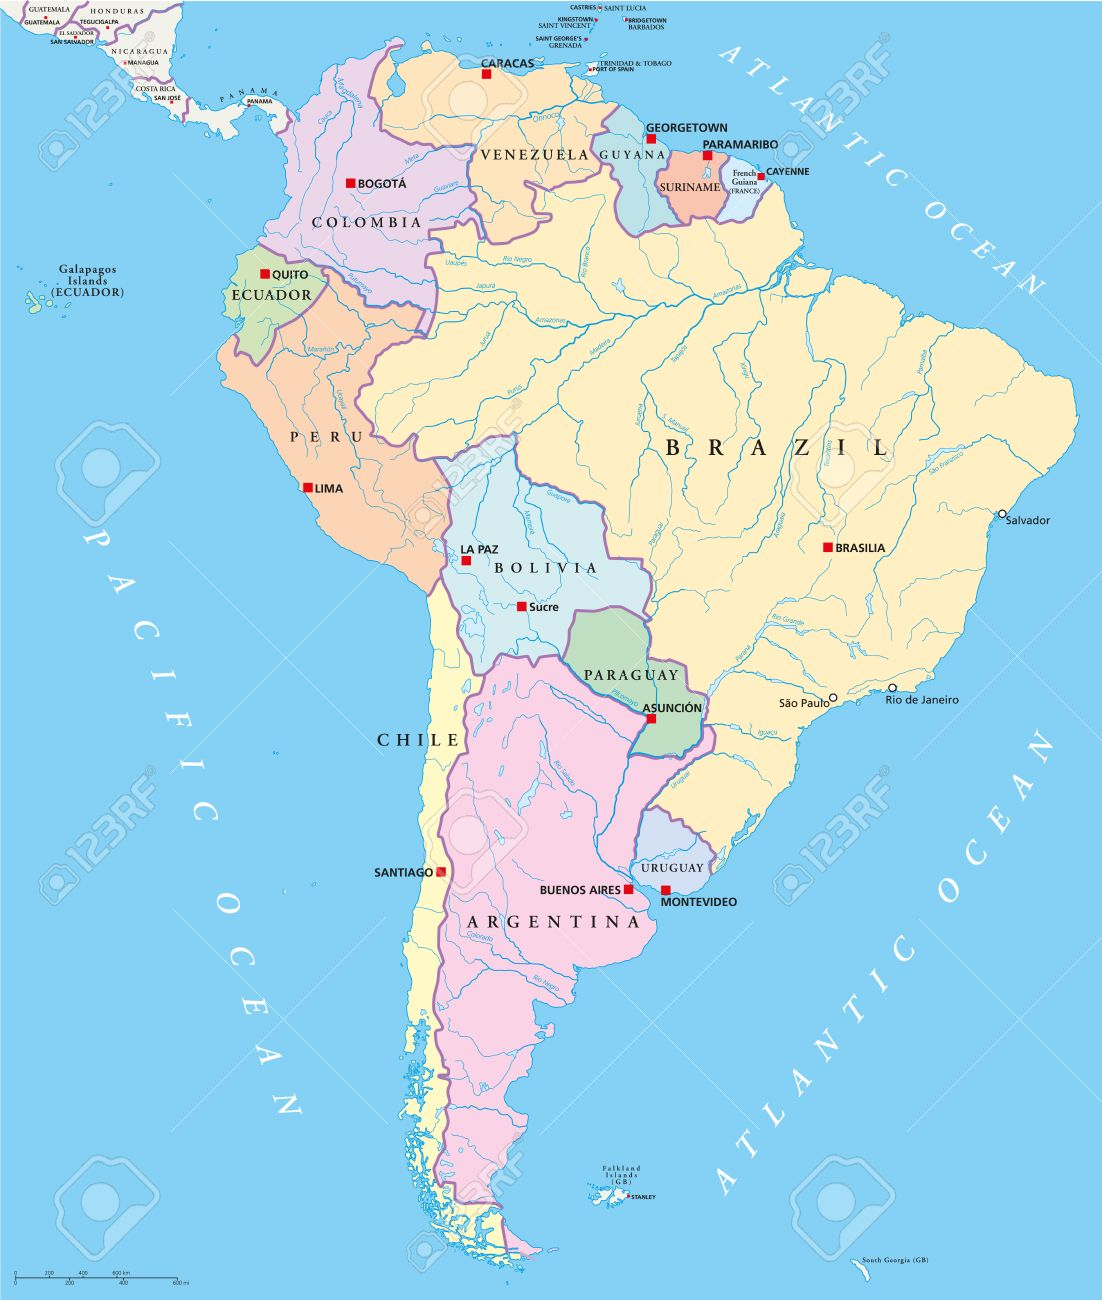 South America Single States Map With Single Statescapitals - Ecuador map south america